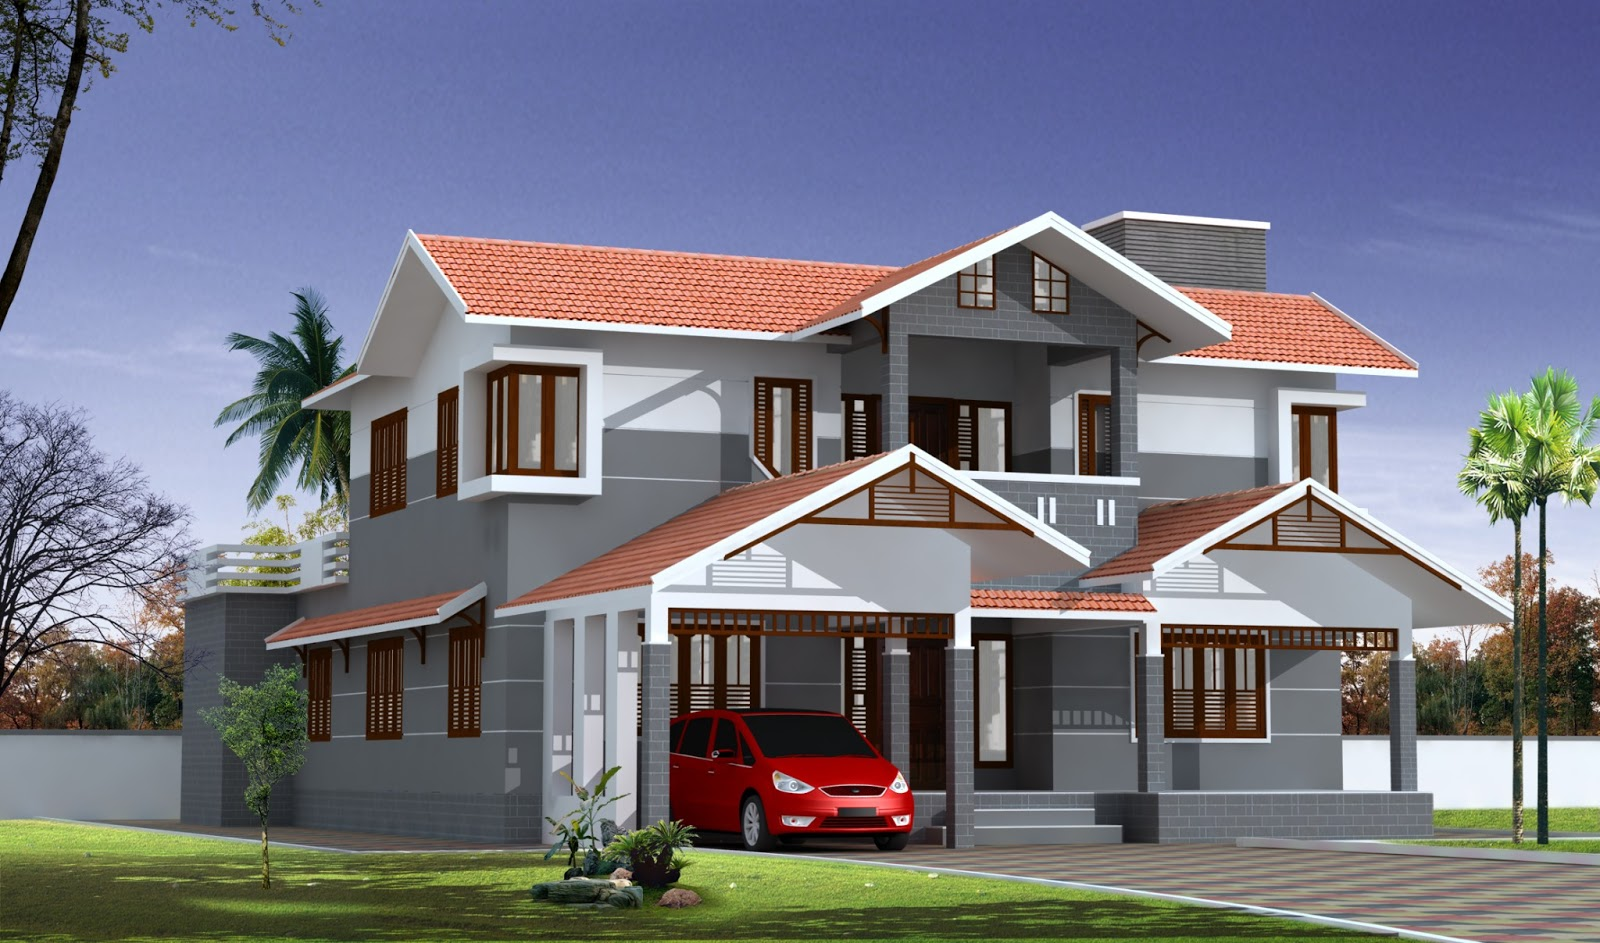 Build a building latest home designs for The house design